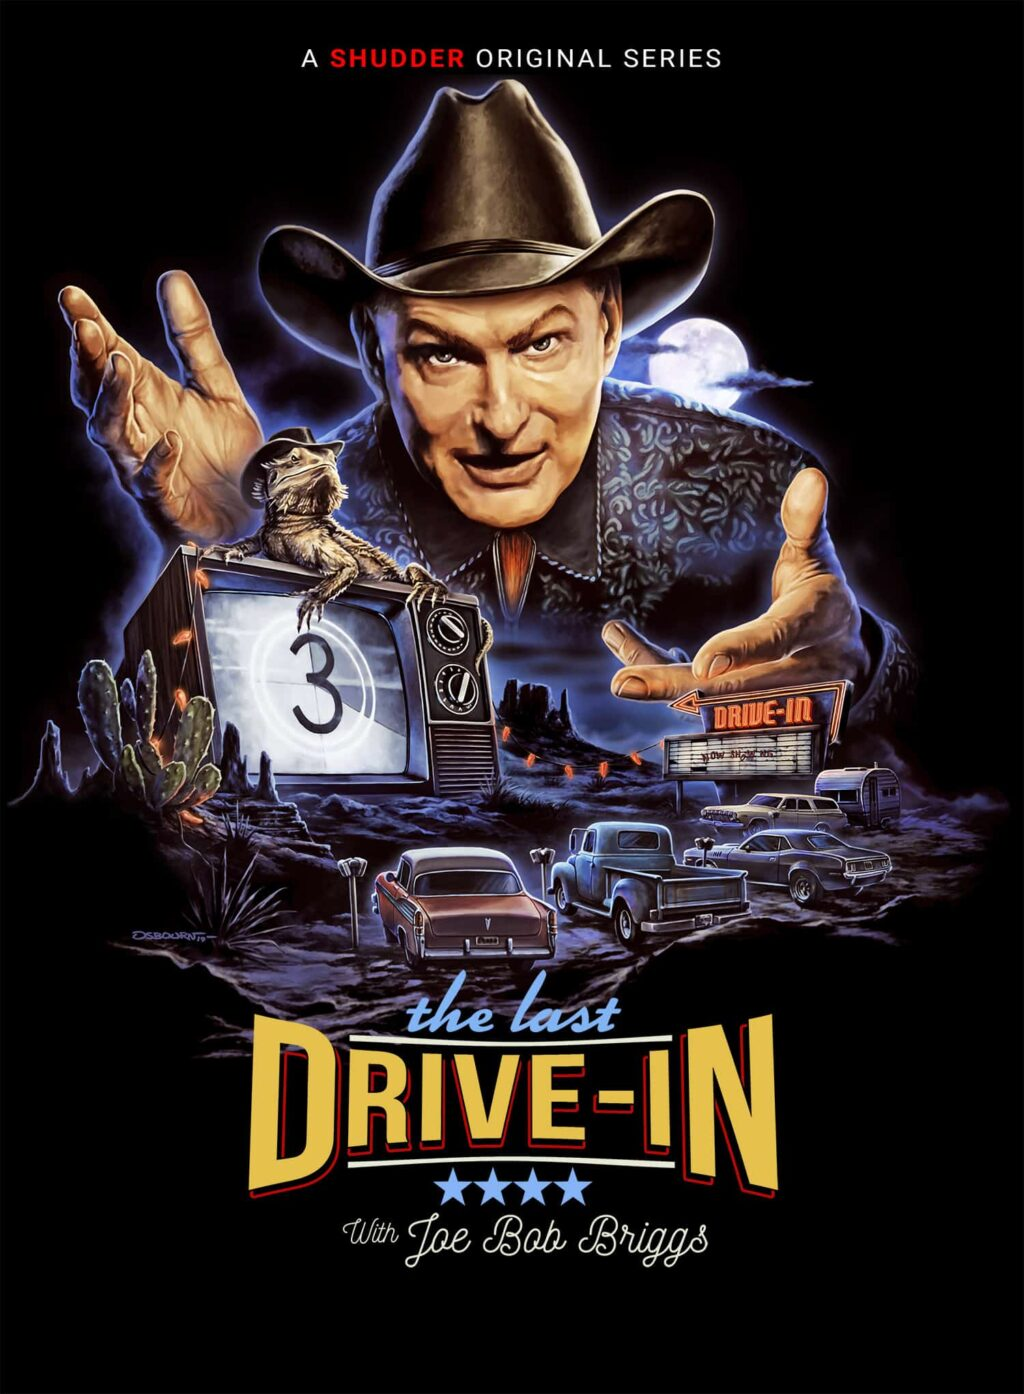 Last Drive In Poster 1024x1394 - MUTANT FEST is now accepting movie submissions for Joe Bob Briggs' 3 Day Drive-In Jamboree